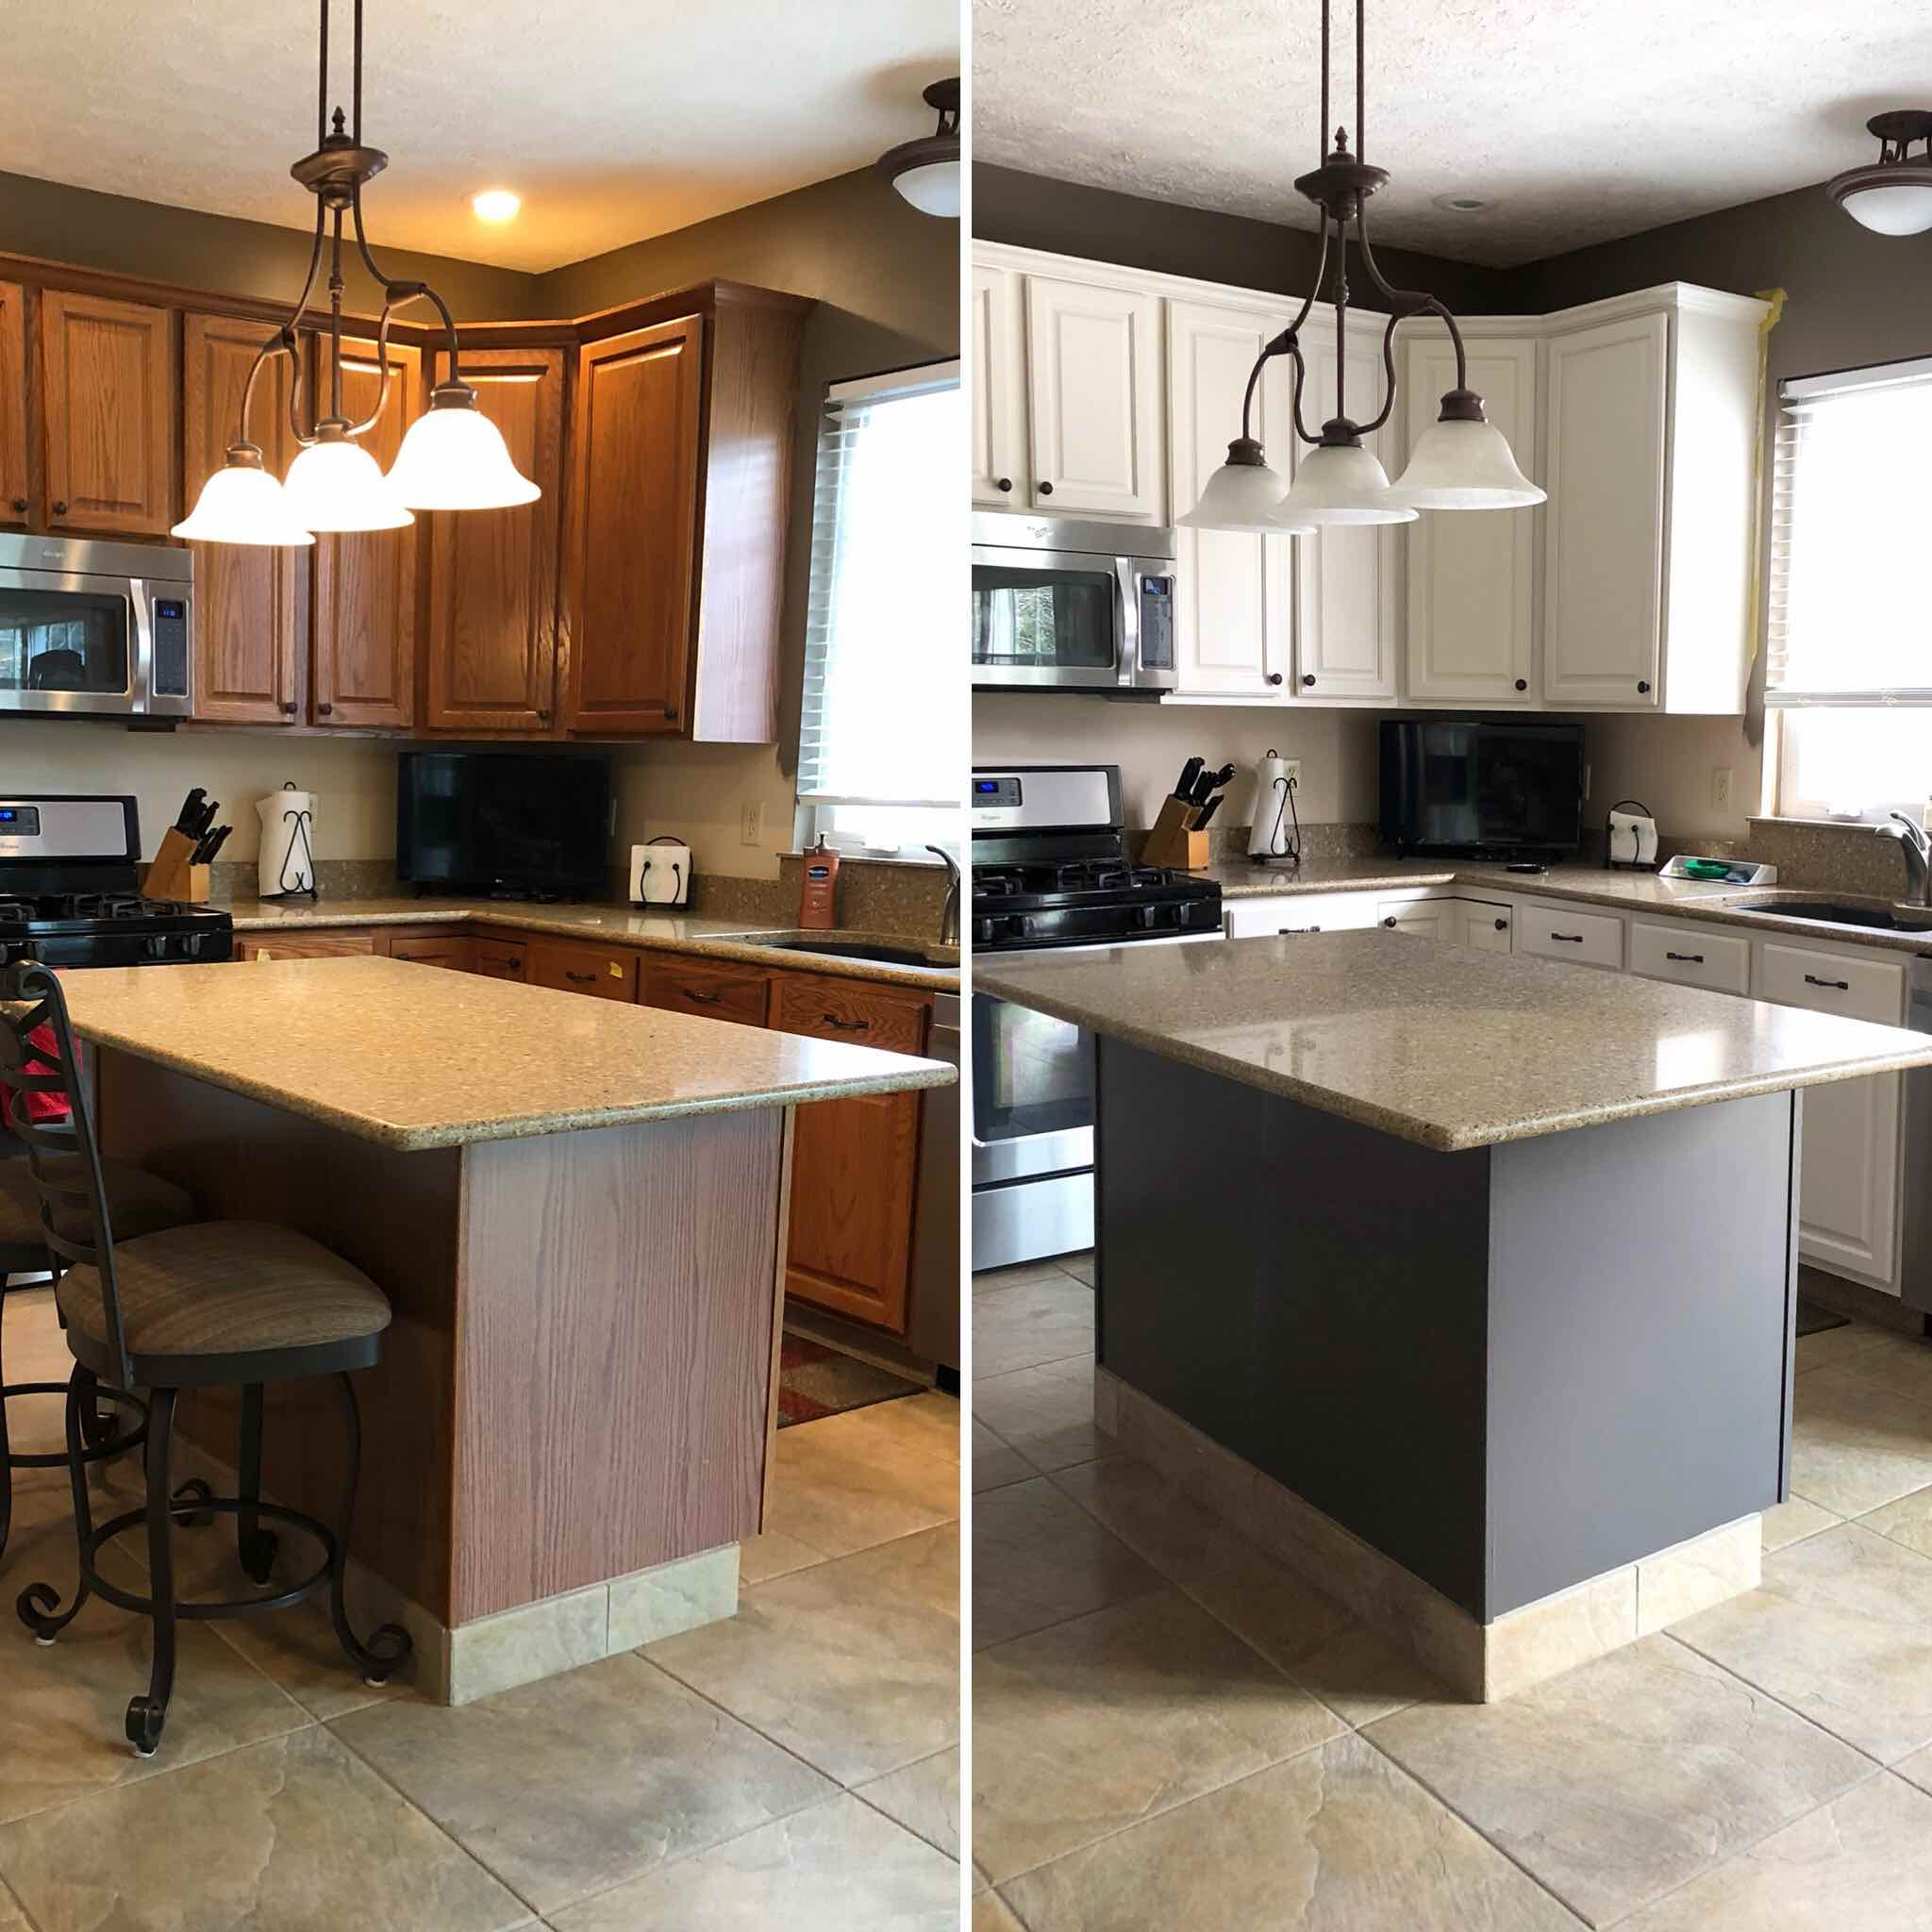 tips tricks for painting oak cabinets evolution of style rh evolutionofstyleblog com can you paint oak cabinets gray can you paint oak cabinets without the grain showing